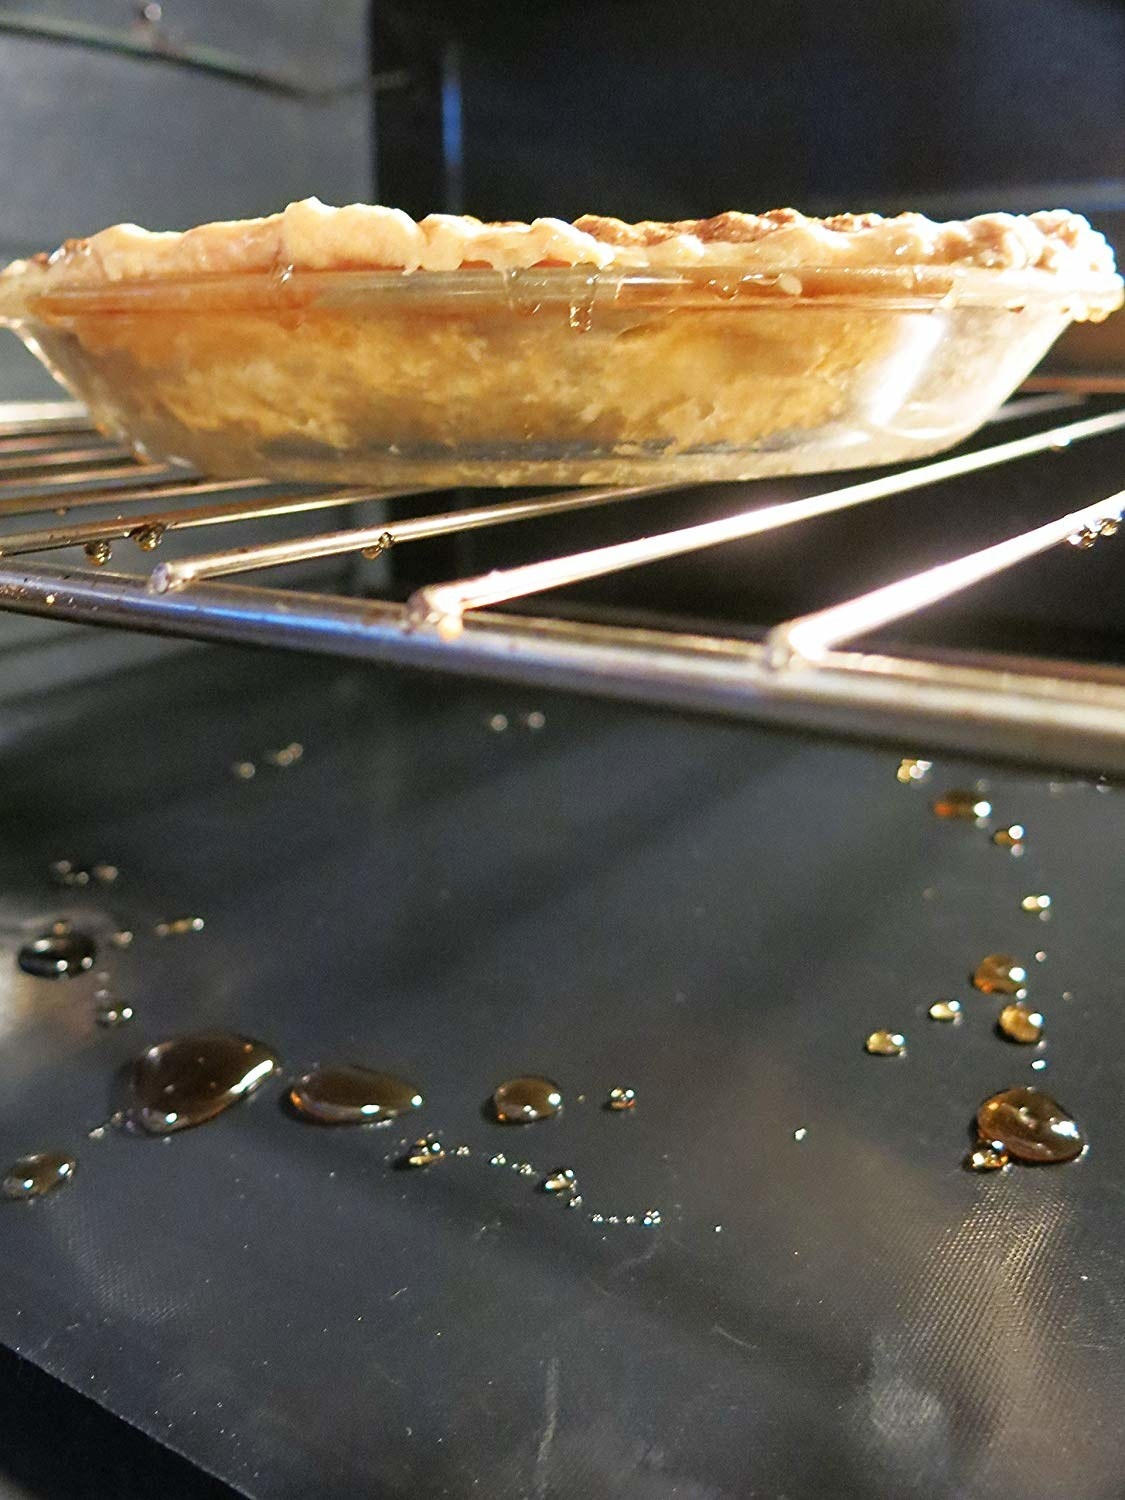 pie in oven dripping onto oven liner